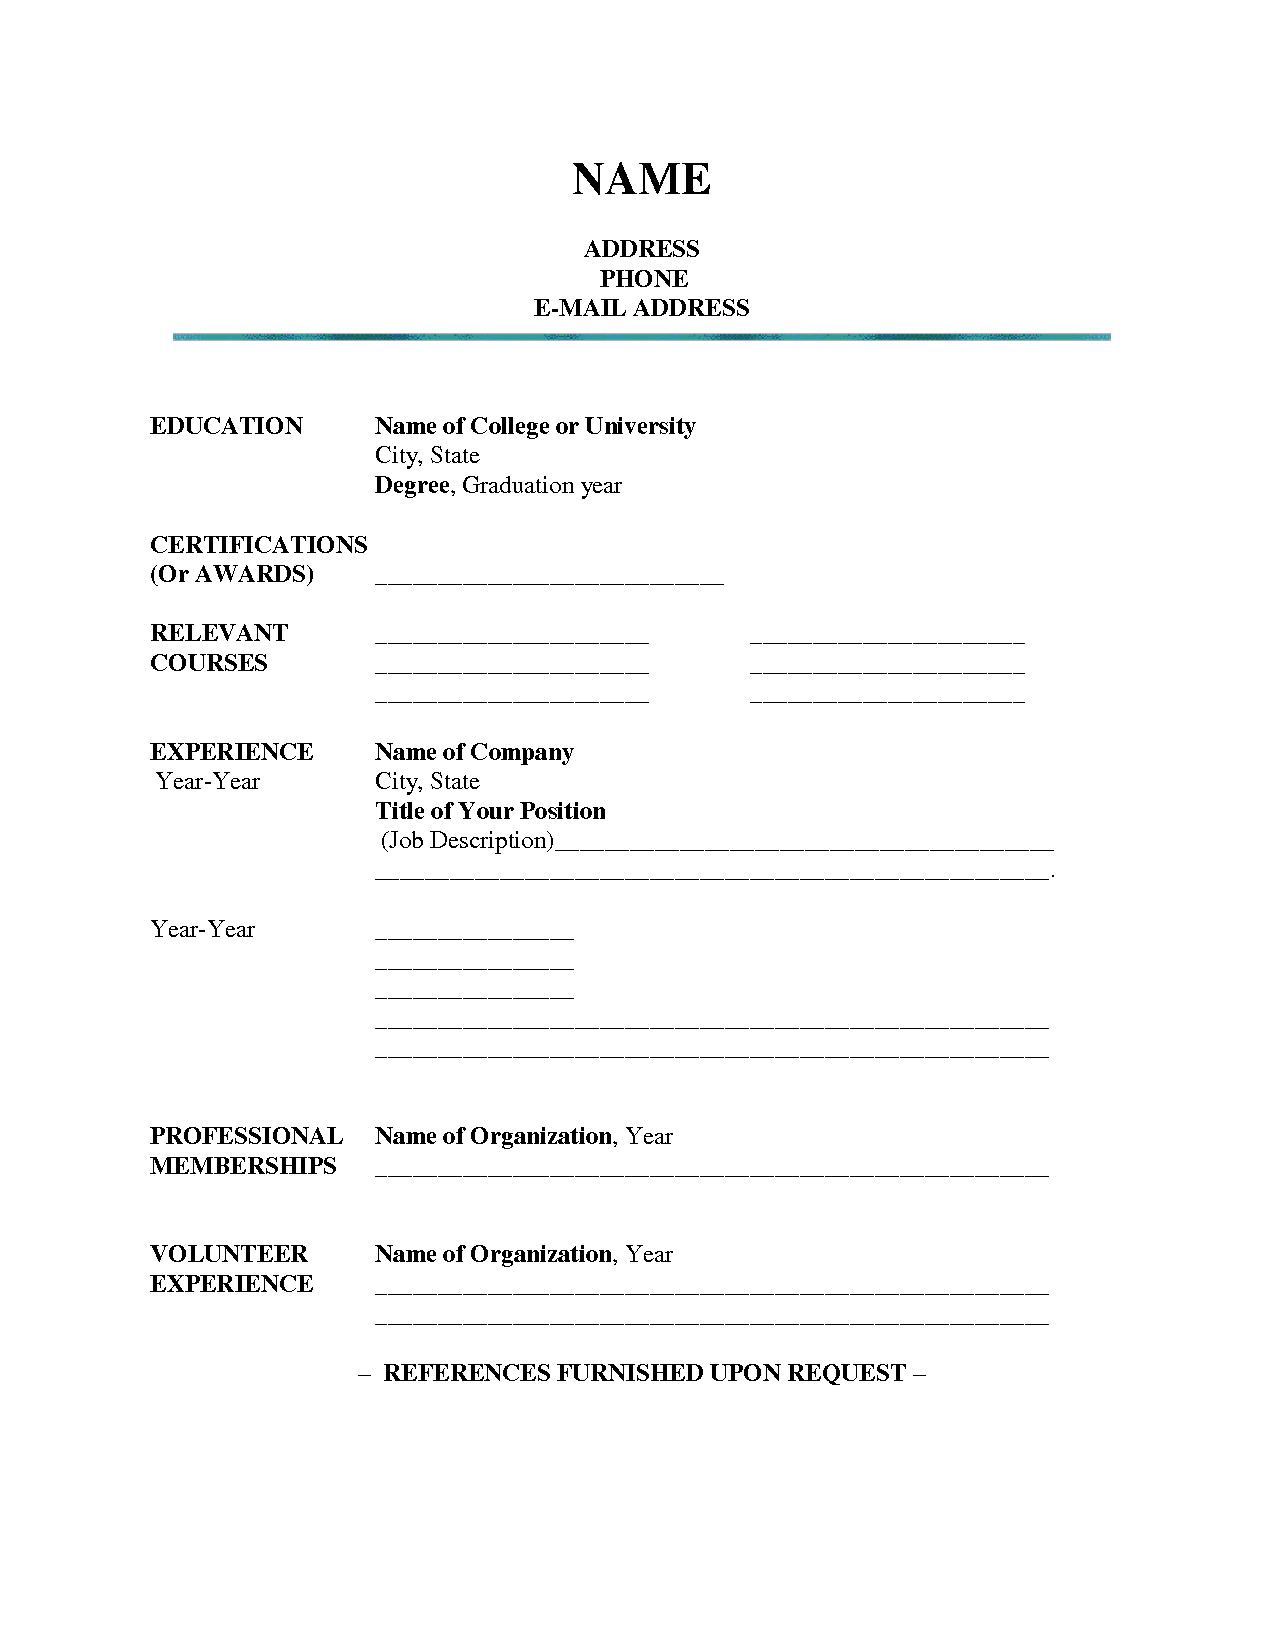 Blank Resume Templates For Students Resume Builderresume Templates Cover Letter Exa Student Resume Template Free Printable Resume Templates Job Resume Template